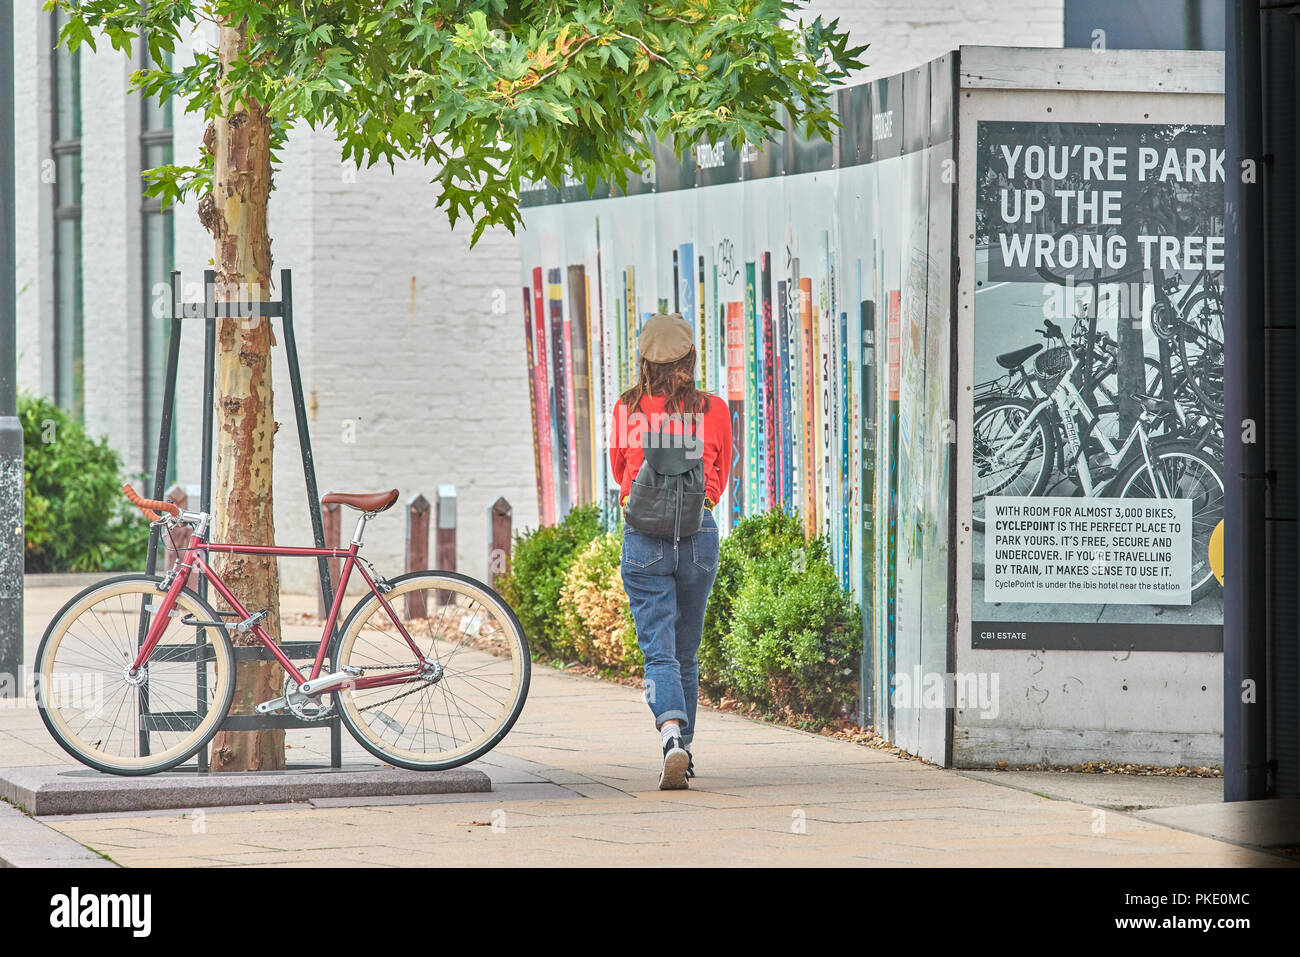 Young woman walks past a notice about parking a bicycle against a tree opposite the railway station at Cambridge, England. - Stock Image